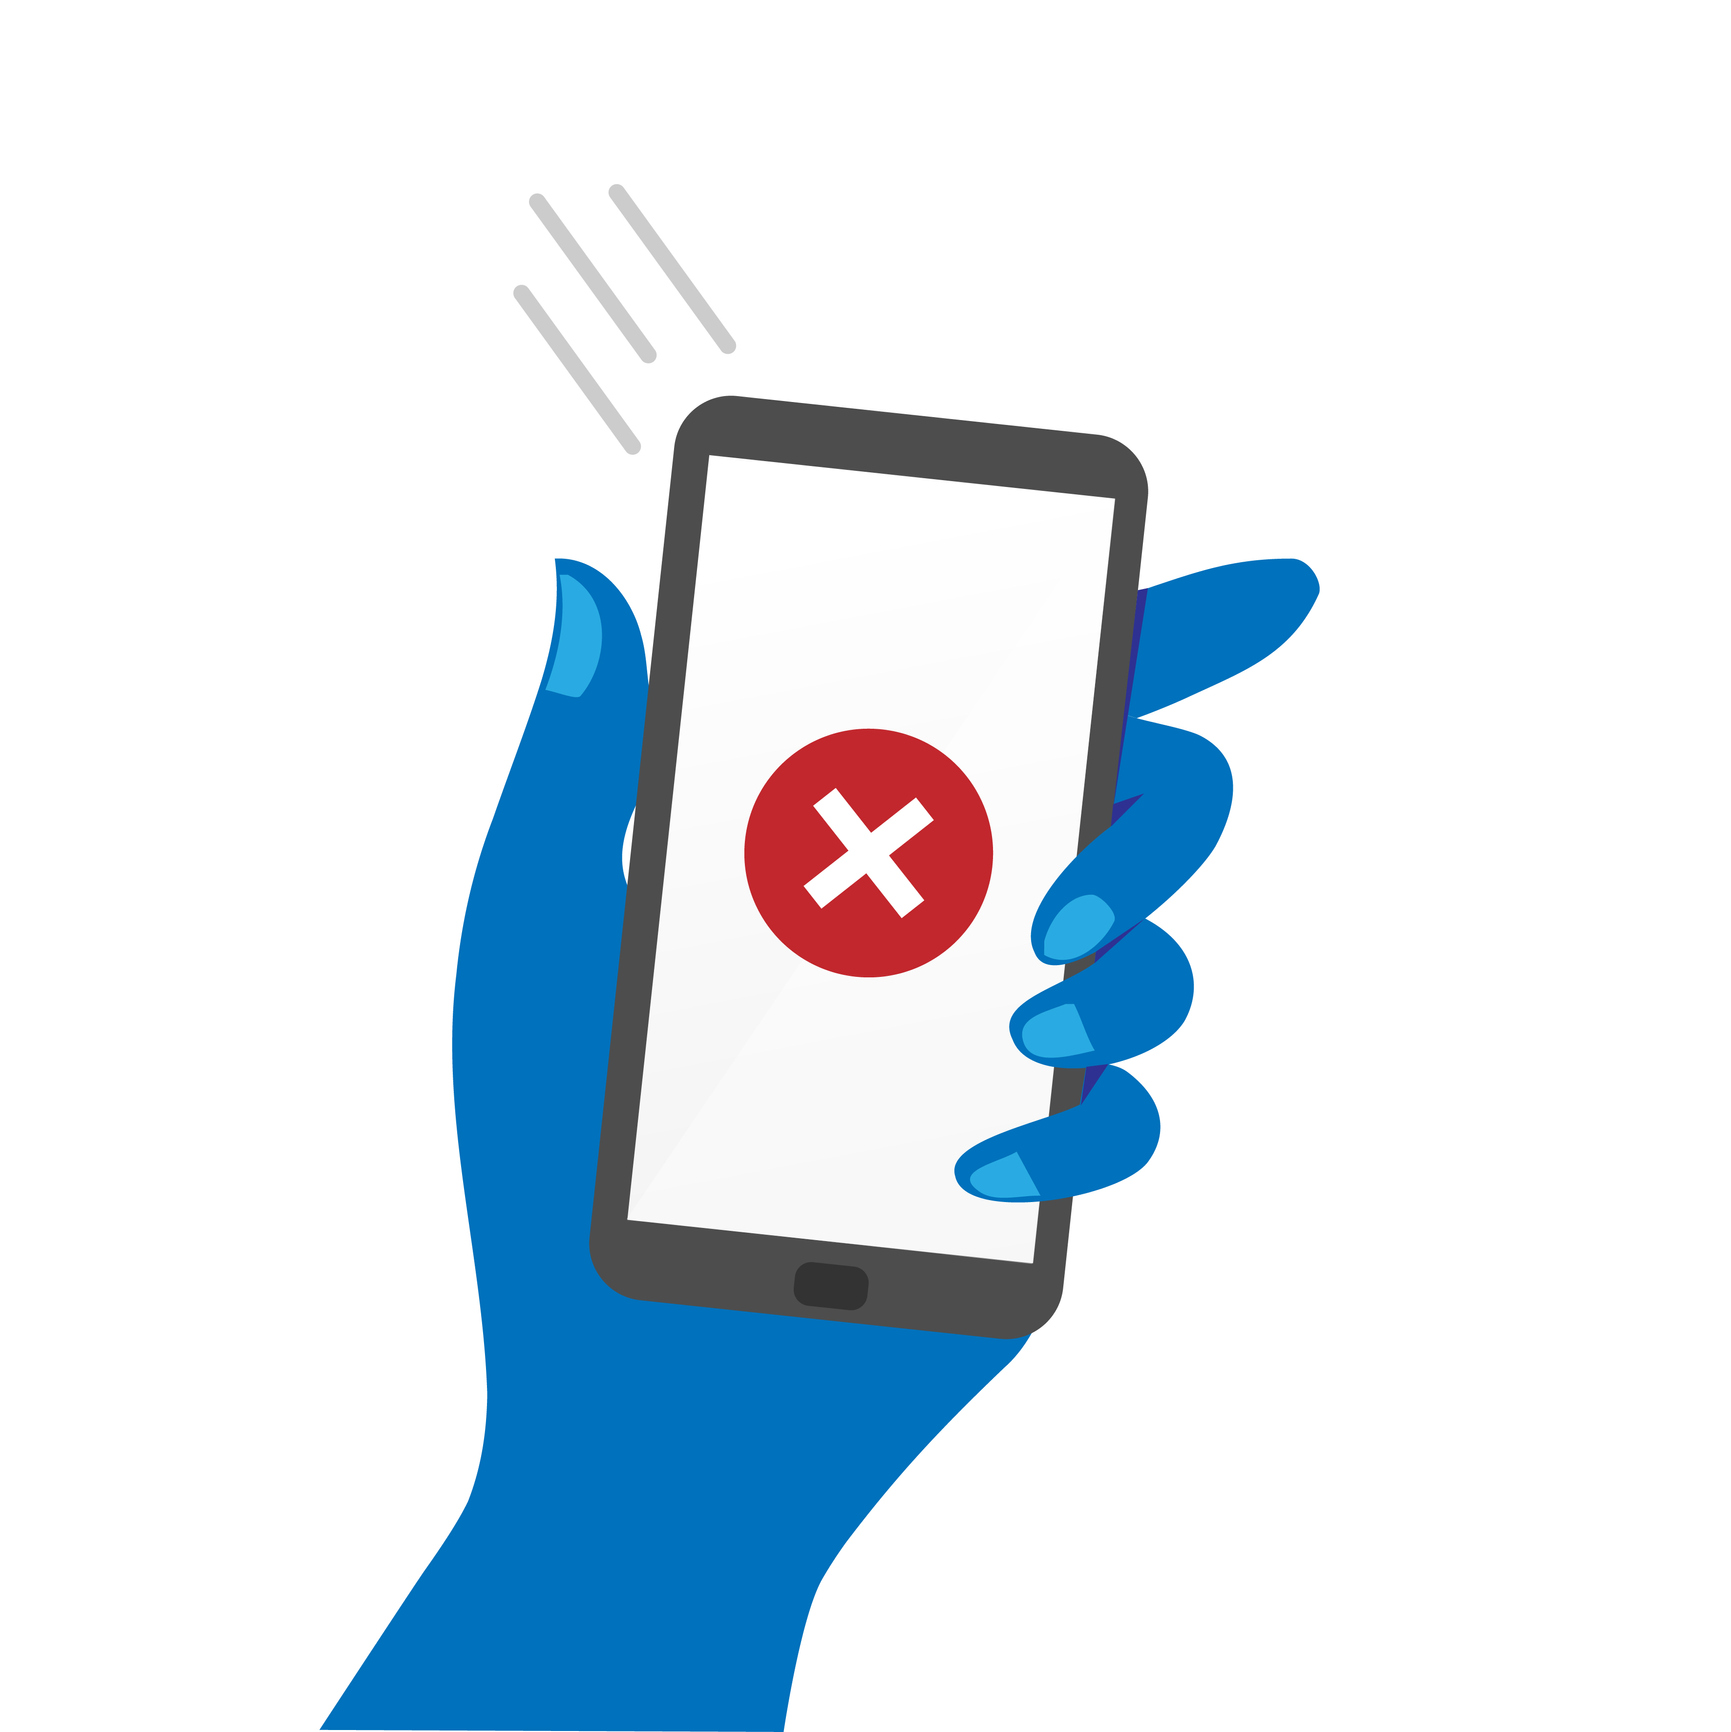 Hand holding smartphone showing decline sign. Image credit: blankaboskov, iStock